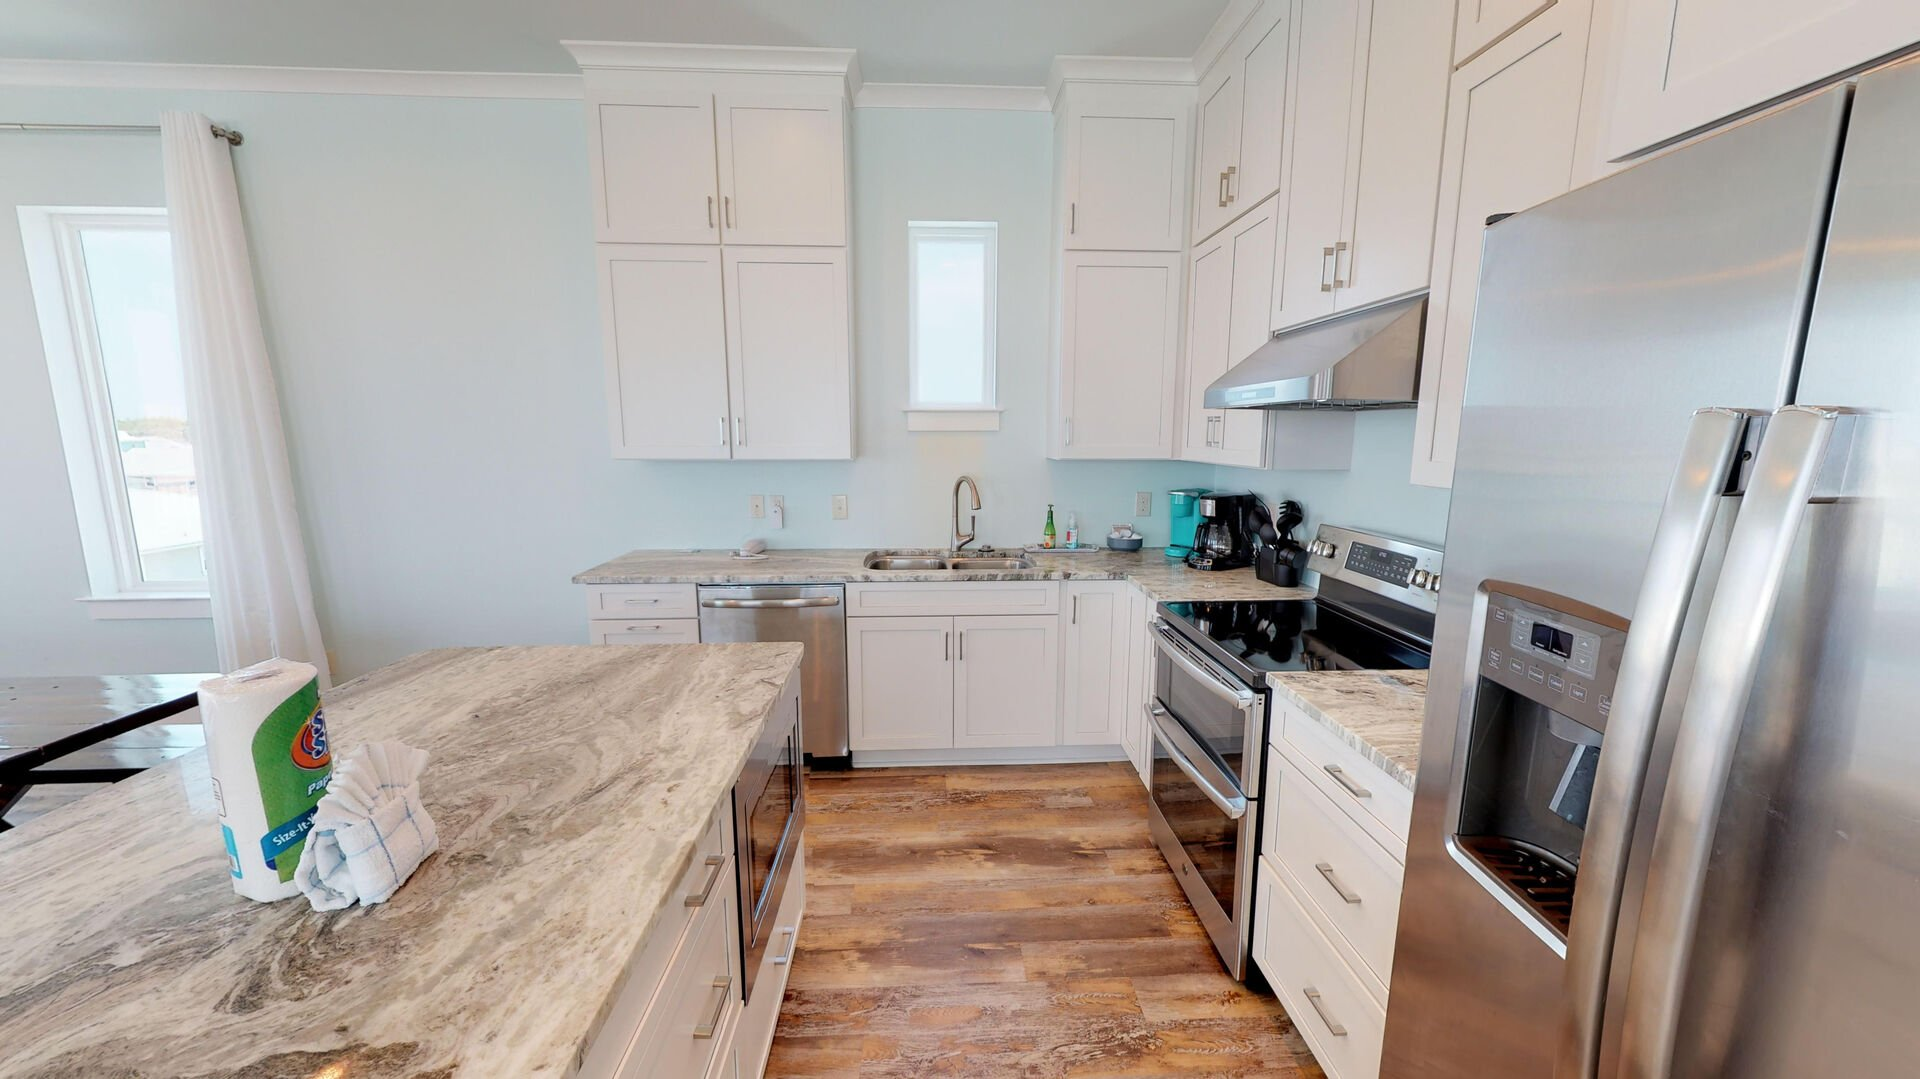 Plenty of space to prepare a meal in the kitchen of this Vacation Home in Gulf Shores.